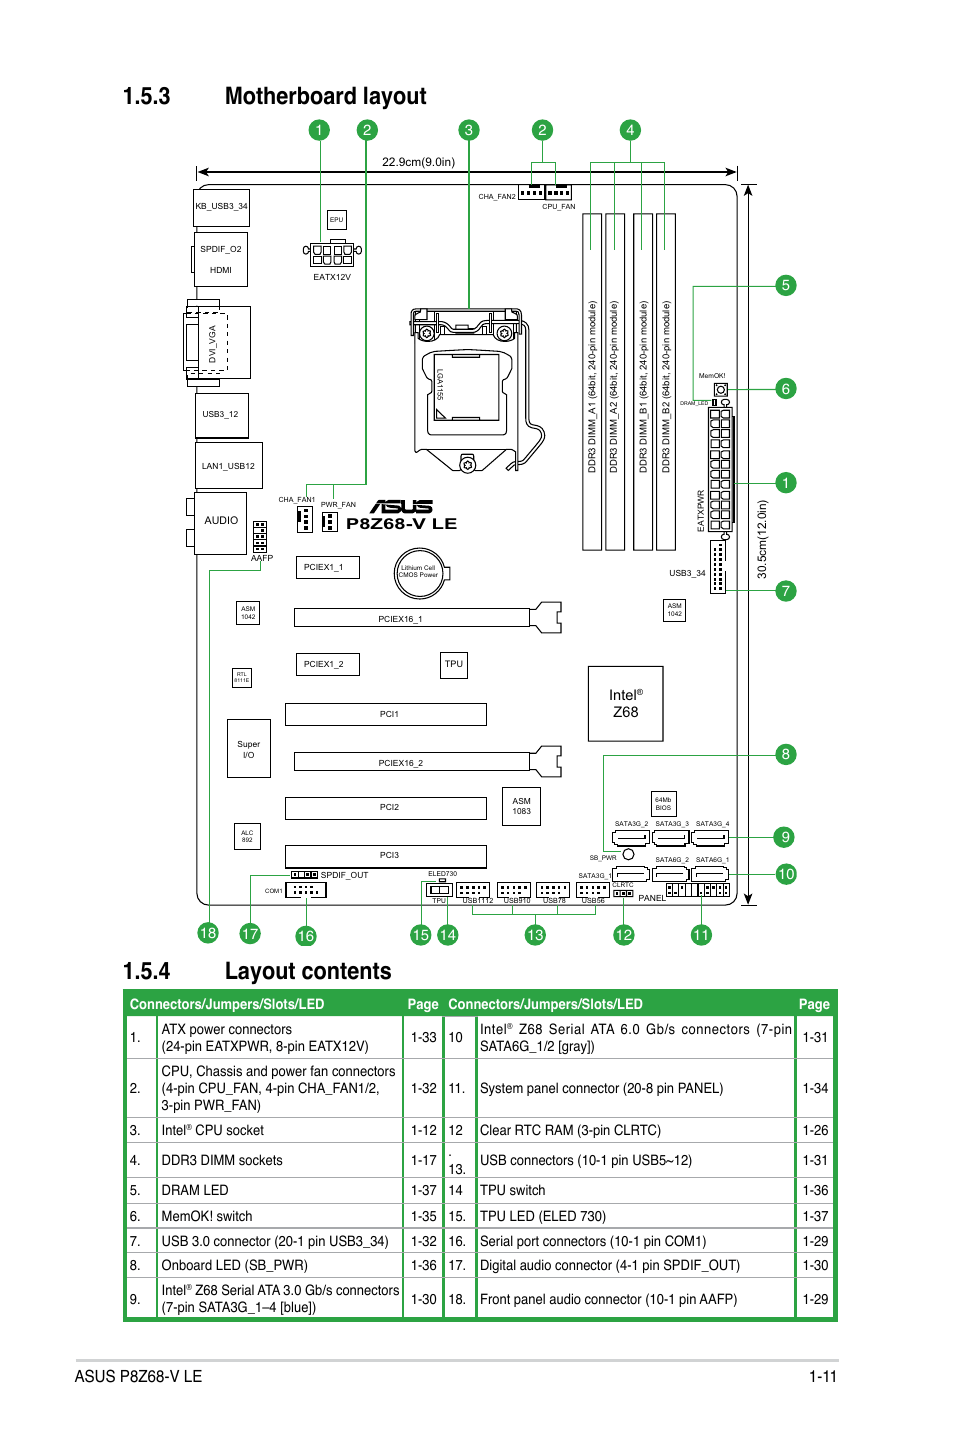 3 motherboard layout, 4 layout contents, motherboard ... v f control block diagram